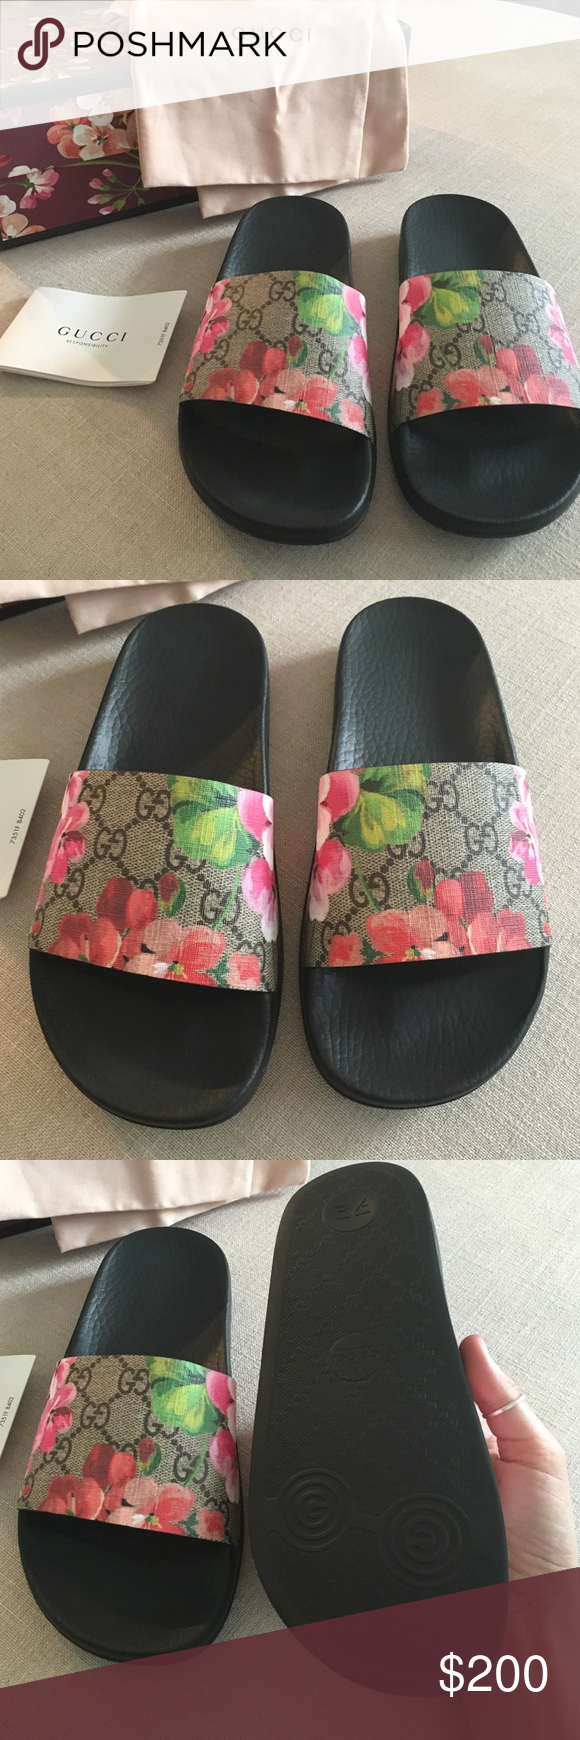 baa5e59a4 Gucci 2016 slide sandals new❤ ❤ Gucci slide sandals 2016 cherry blossom  edition. Brand new in box. Comes with dust bags and authenticity card.